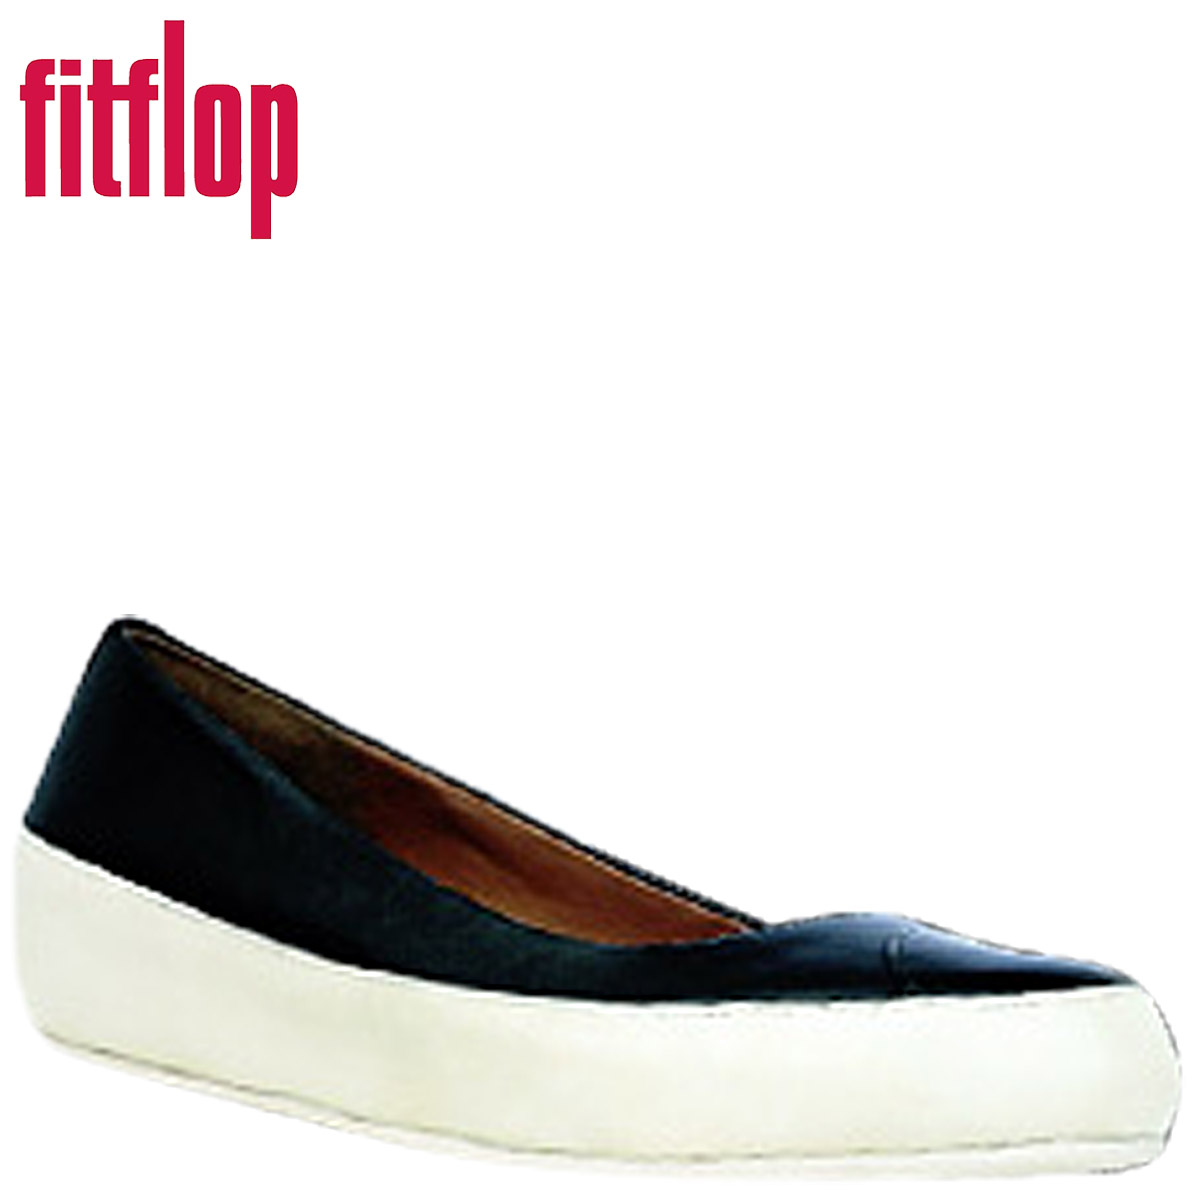 FitFlop fitting FLOP Douai pumps DUE leather shoes loafer 246 4 color Lady's